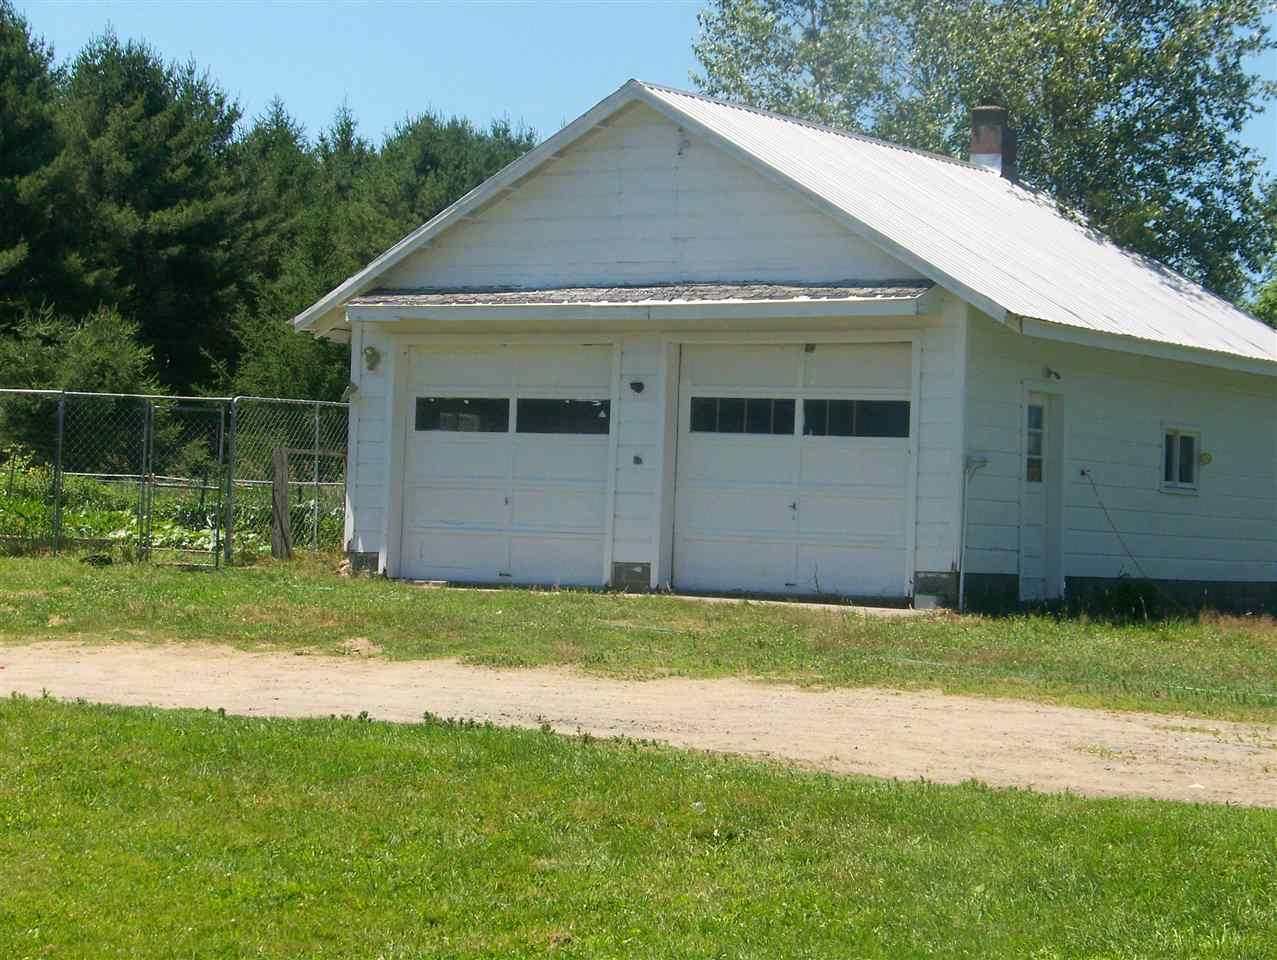 Commercial Property For Sale In Gloversville Ny